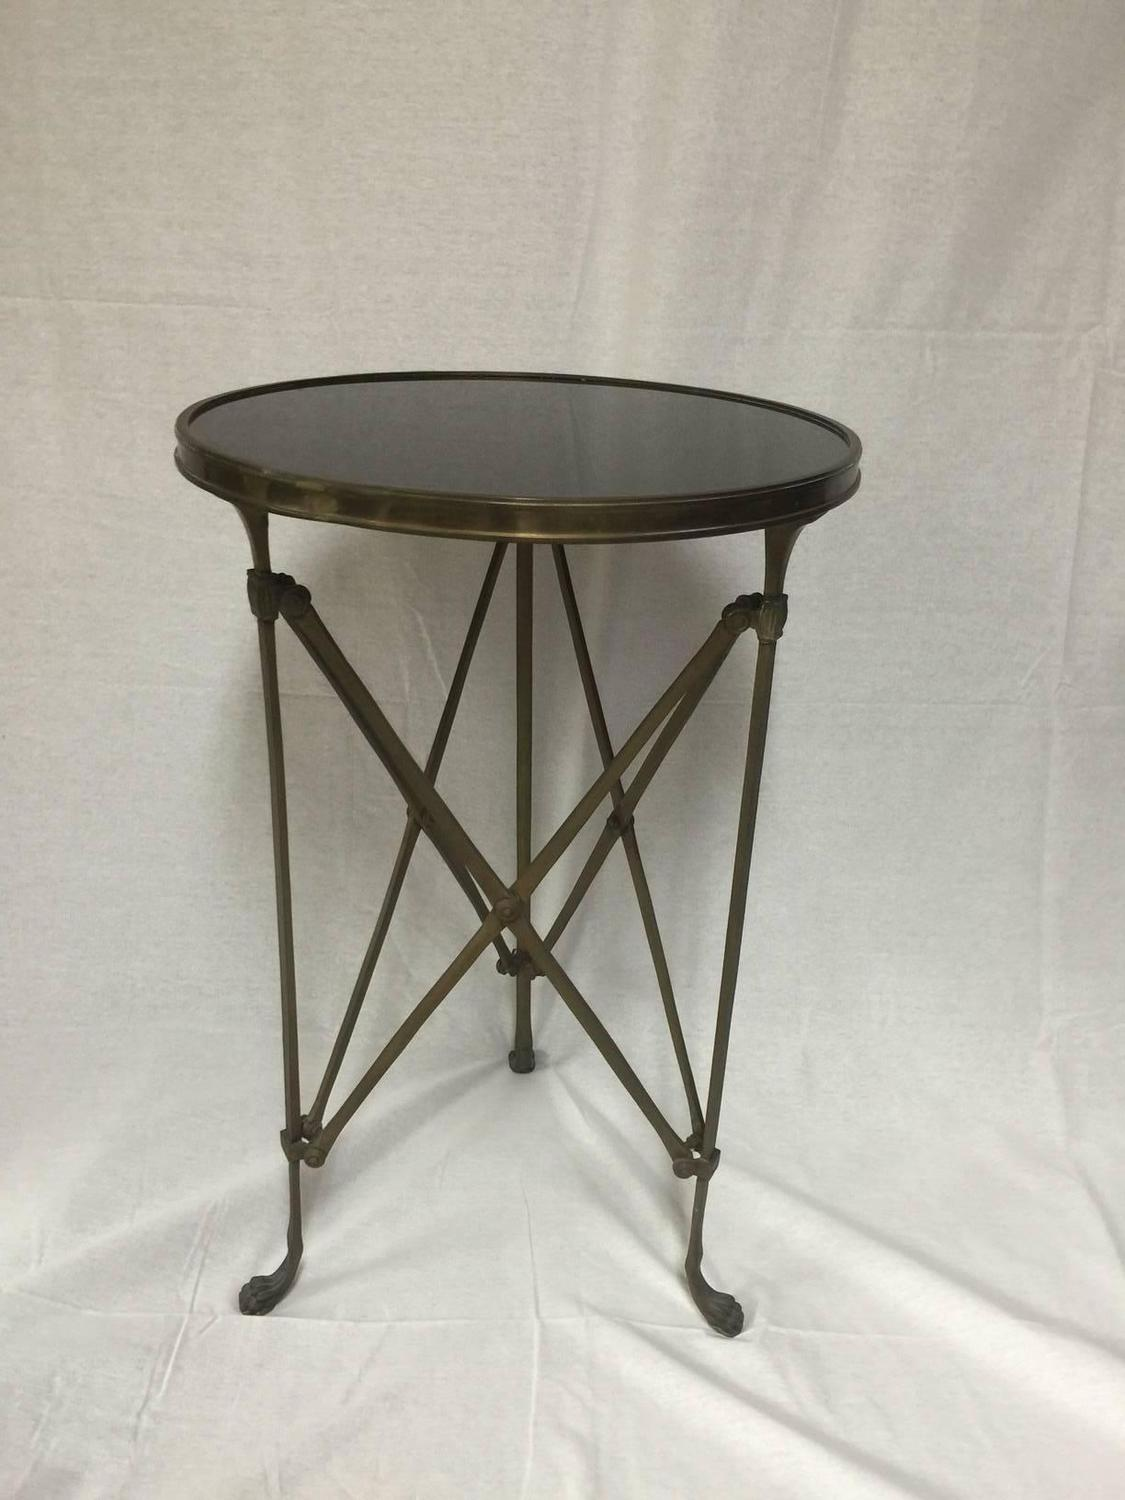 neoclassical french gilt bronze and black marble gueridon brass accent table round sofa lamp tables raw wood end narrow console with shelves all glass high pub corner foyer ikea